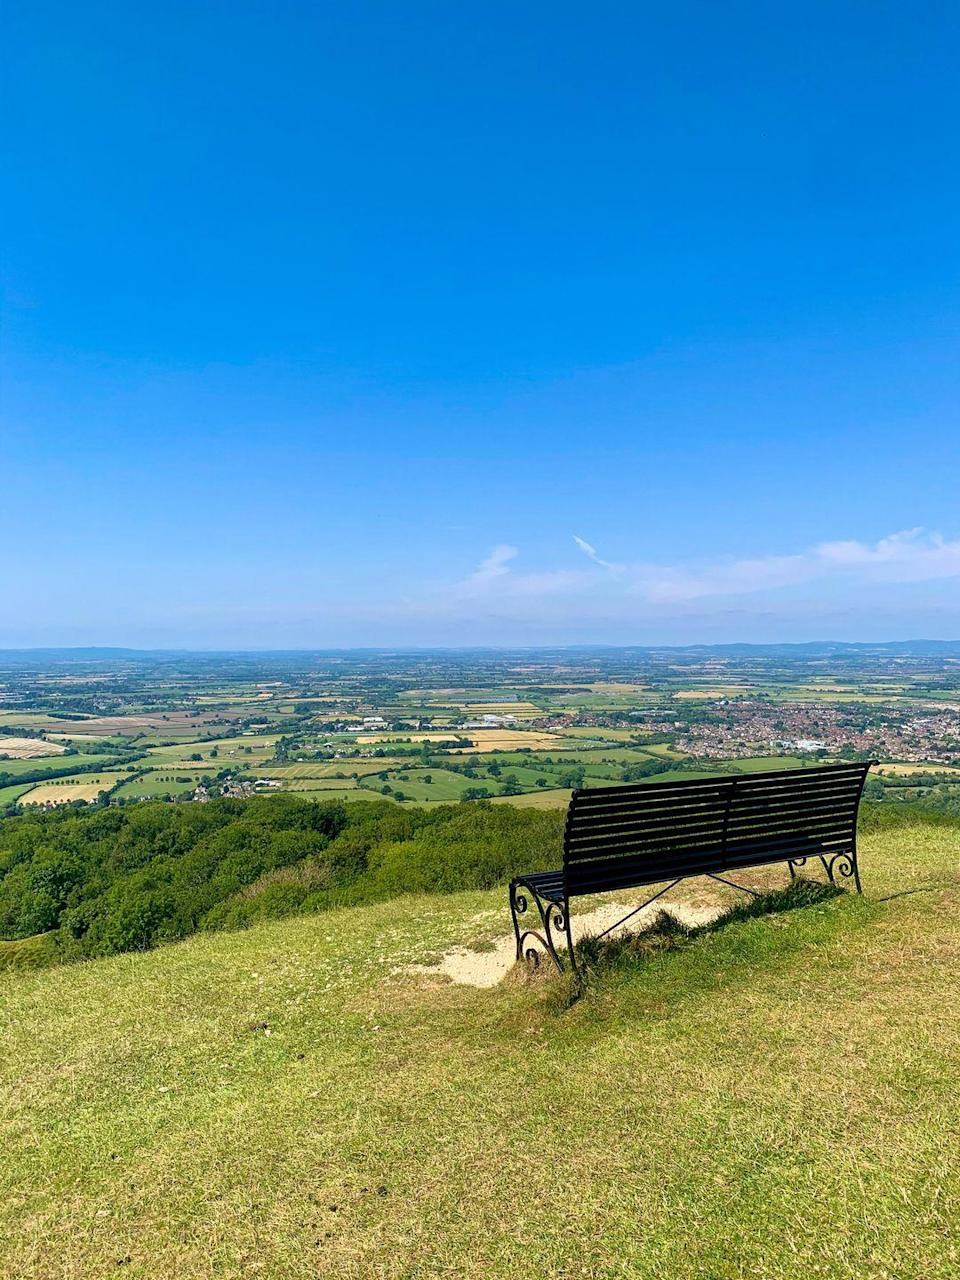 "<p><strong>Walking distance: 6 miles</strong></p><p>If it's fabulous views you're looking for, Cleeve Hill is the ideal destination being the highest point in Gloucestershire and also the highest peak of the Cotswold Hills. You can take in views over the Cheltenham Racecourse, Gloucester's cathedral, and the Malvern Hills on a clear day. </p><p>Cleeve Common is also a great example of a limestone grassland landscape, with wildlflower meadows and rich wildlife habitat. See the map and walk details at <a href=""https://www.cotswoldsaonb.org.uk/wp-content/uploads/2017/06/Walk-5-Cleeve-Common-Circular-Walk-FINAL.pdf"" rel=""nofollow noopener"" target=""_blank"" data-ylk=""slk:cotswoldsaonb.org.uk"" class=""link rapid-noclick-resp"">cotswoldsaonb.org.uk</a>.</p><p><strong>Where to stay:</strong> Set on a 90-acre estate at the Botton of Cleeve Hill, <a href=""https://www.countrylivingholidays.com/offers/cotswolds-cheltenham-ellenborough-park-hotel"" rel=""nofollow noopener"" target=""_blank"" data-ylk=""slk:Ellenborough Park"" class=""link rapid-noclick-resp"">Ellenborough Park</a> is a slice of post-walk luxury, with a spa and cosy crackling fires galore.</p><p><a href=""https://www.countrylivingholidays.com/offers/cotswolds-cheltenham-ellenborough-park-hotel"" rel=""nofollow noopener"" target=""_blank"" data-ylk=""slk:Read our hotel review of Ellenborough Park"" class=""link rapid-noclick-resp"">Read our hotel review of Ellenborough Park</a></p><p><a class=""link rapid-noclick-resp"" href=""https://go.redirectingat.com?id=127X1599956&url=https%3A%2F%2Fwww.booking.com%2Fhotel%2Fgb%2Fellenborough-park.en-gb.html%3Faid%3D2070935&sref=https%3A%2F%2Fwww.countryliving.com%2Fuk%2Ftravel-ideas%2Fstaycation-uk%2Fg34427860%2Fcotswold-walks%2F"" rel=""nofollow noopener"" target=""_blank"" data-ylk=""slk:CHECK PRICES"">CHECK PRICES</a></p><p><strong>We want to help you stay inspired. Sign up for the latest travel tales and to hear about our favourite financially protected escapes and bucket list adventures.</strong></p><p><a class=""link rapid-noclick-resp"" href=""https://hearst.emsecure.net/optiext/optiextension.dll?ID=lq4lgpcAuz%2BVDWaZO1C4jPxg7227ab9YExHA_BSg4Uw5ngmqTMwLkiiEbS%2BxaUlbUhEHIuPv9v6XlA"" rel=""nofollow noopener"" target=""_blank"" data-ylk=""slk:SIGN UP"">SIGN UP</a></p>"